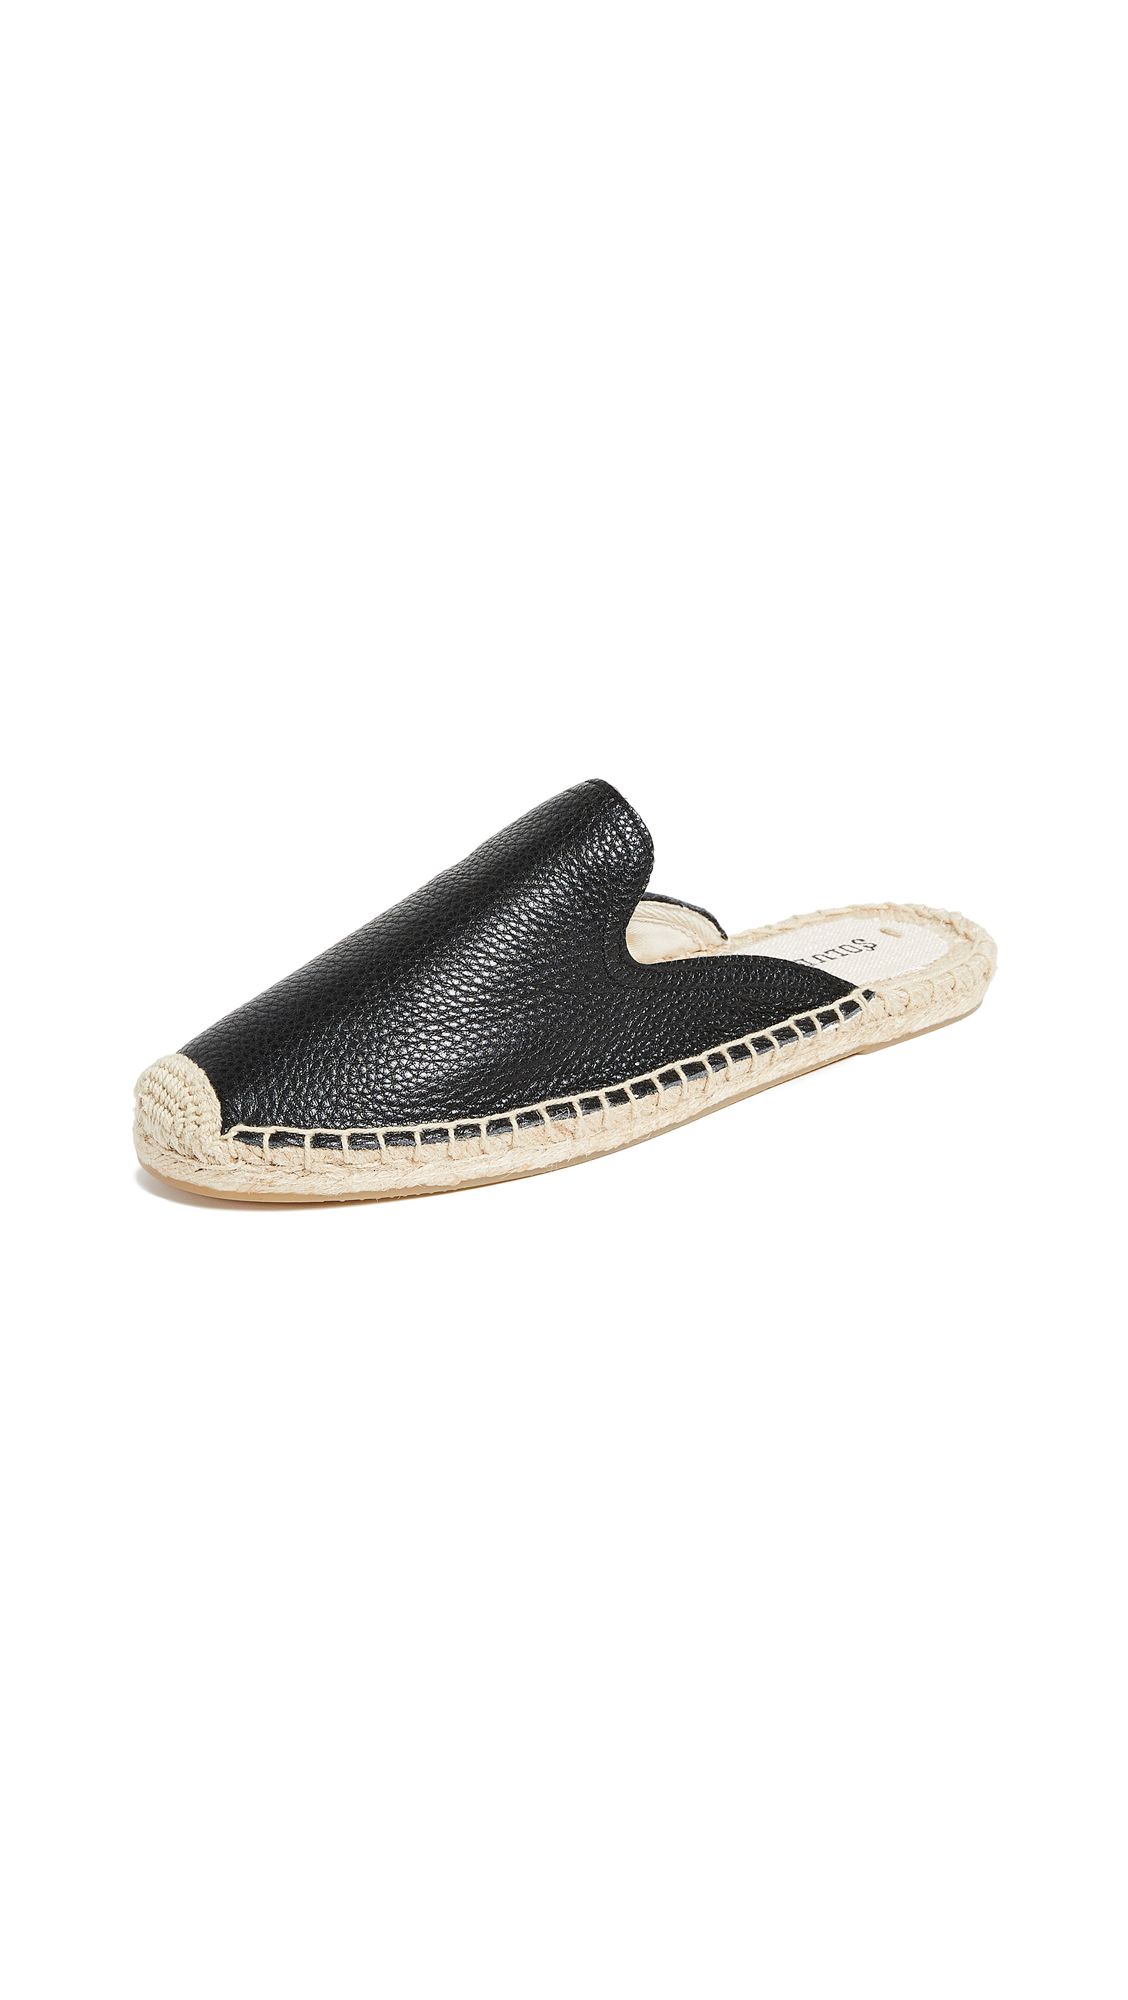 Soludos Tumbled Leather Mules - Black